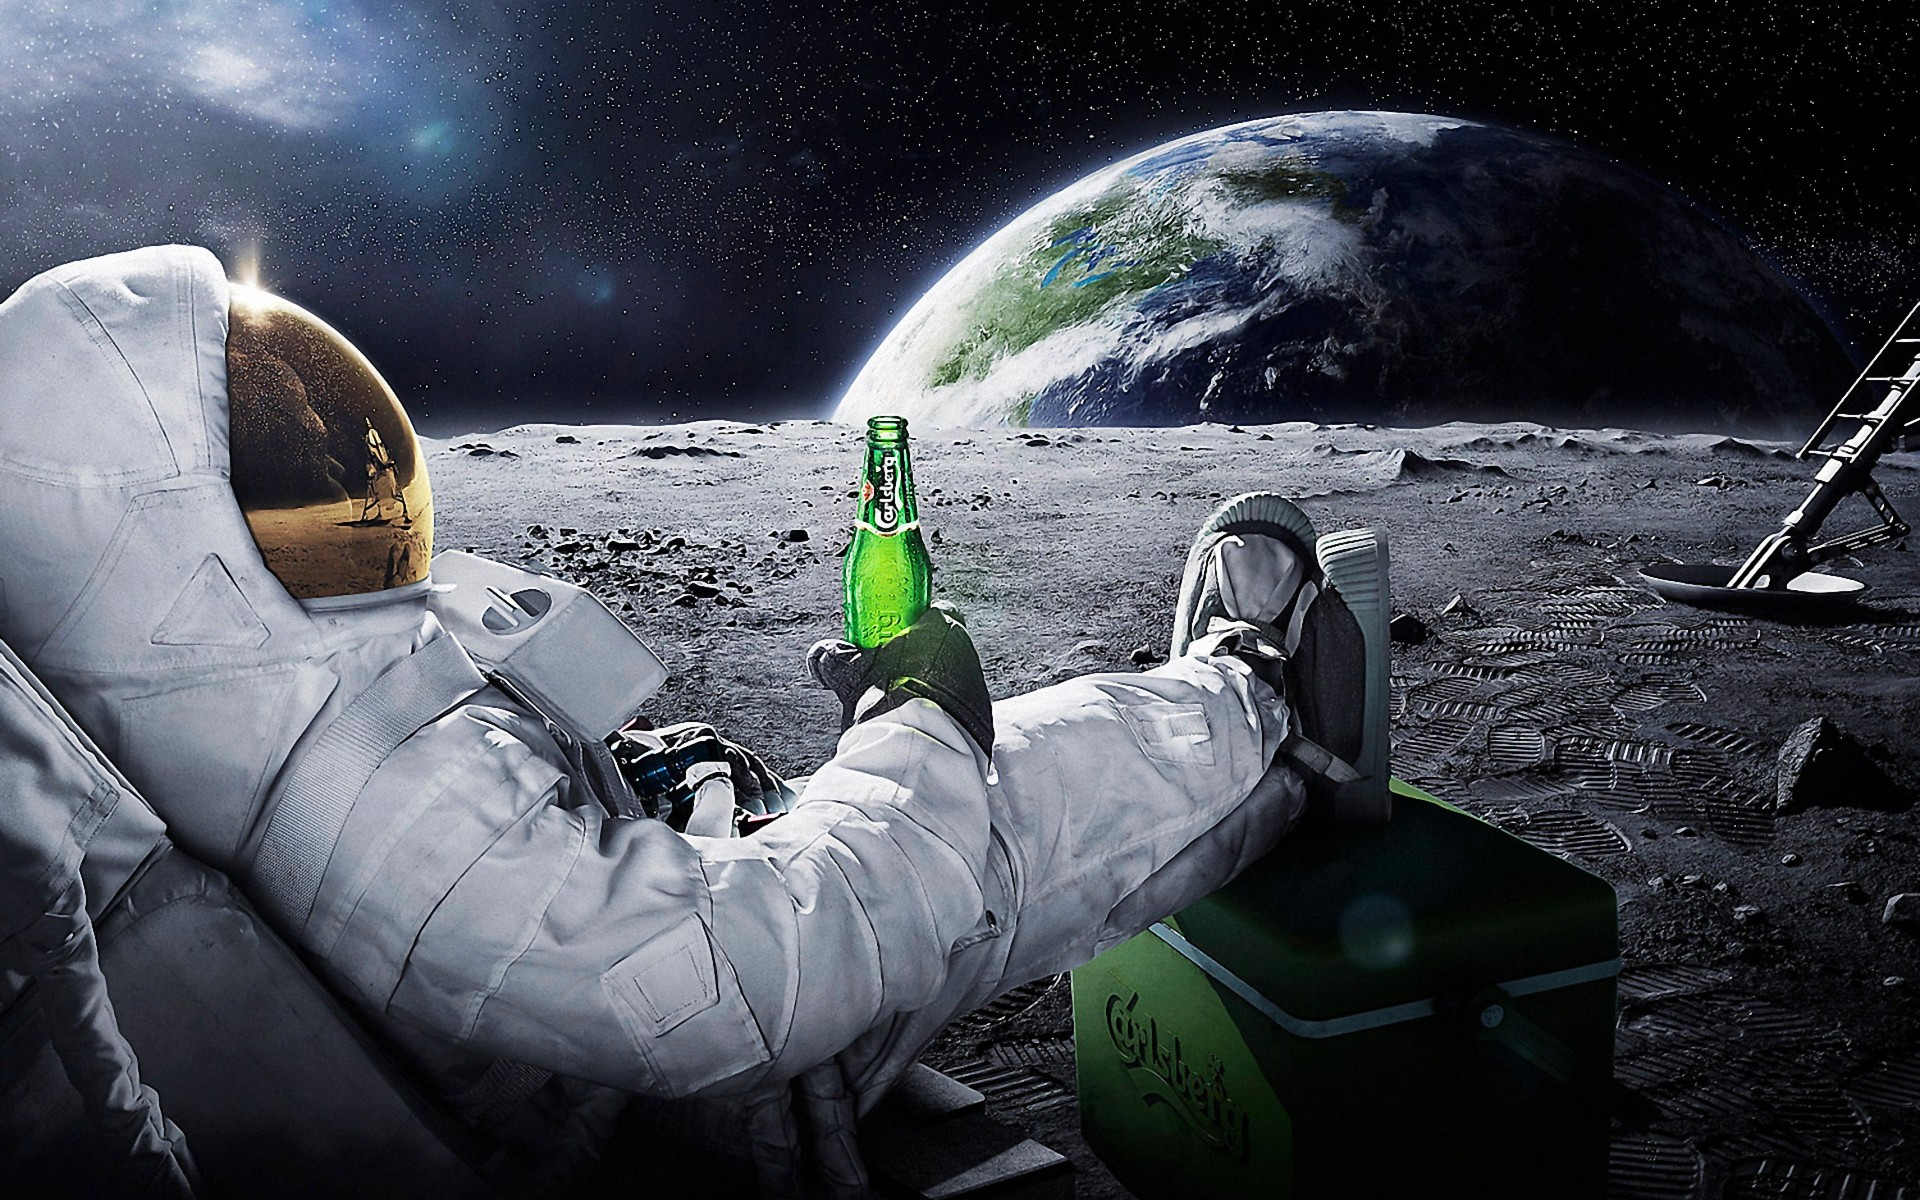 22917_3d_space_scene_astronaut_chilling_on_the_moon_with_beer (1).jpg